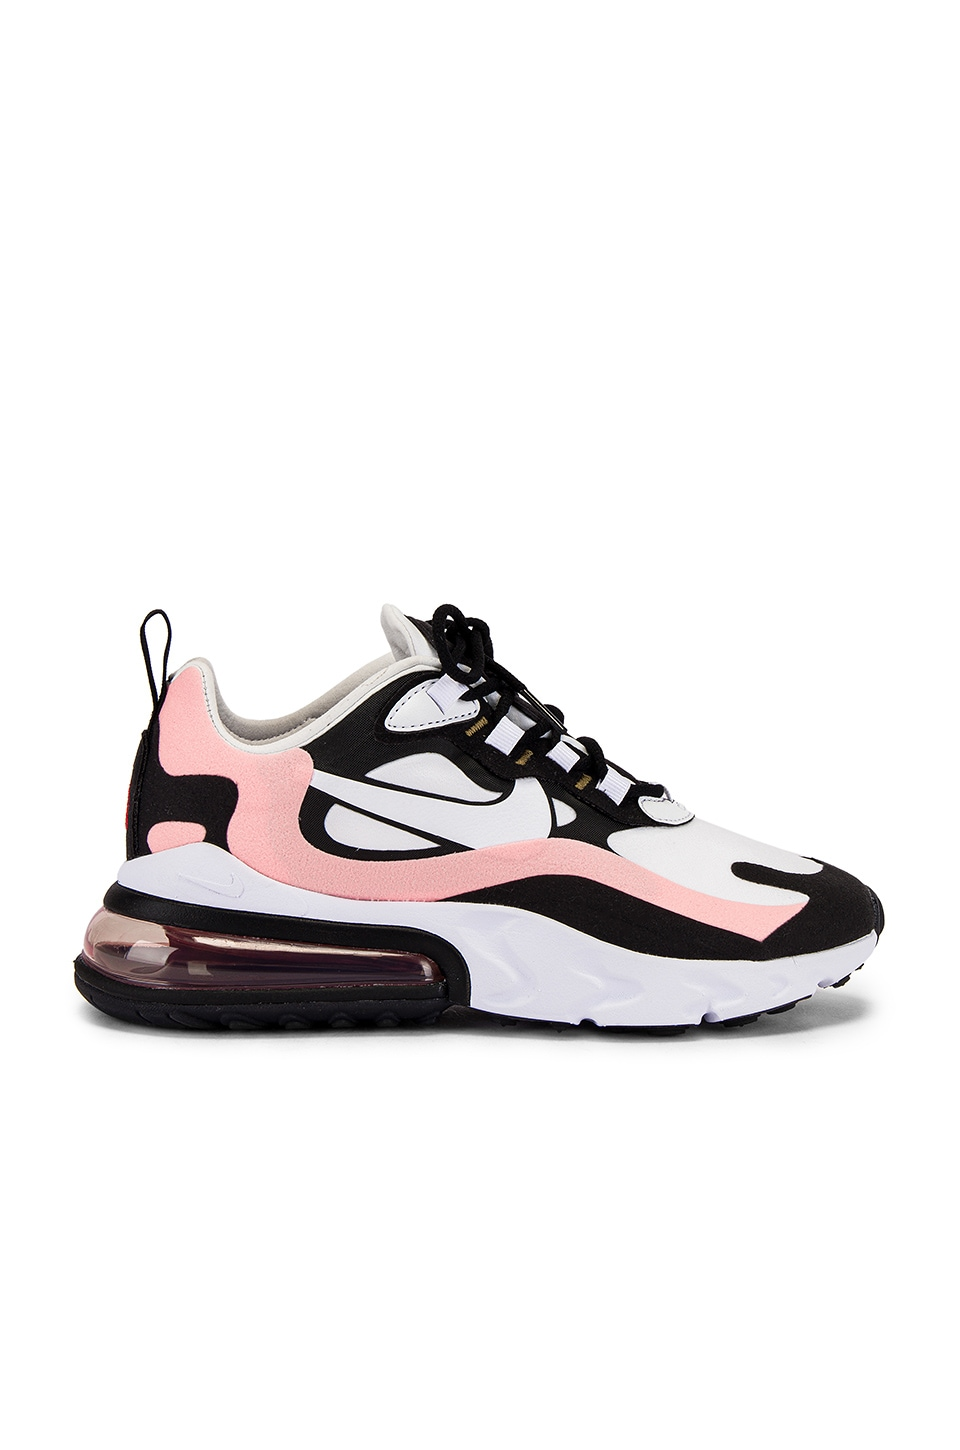 Nike Air Max 270 React Sneaker in Black, White, Bleached Coral, & Metallic Gold